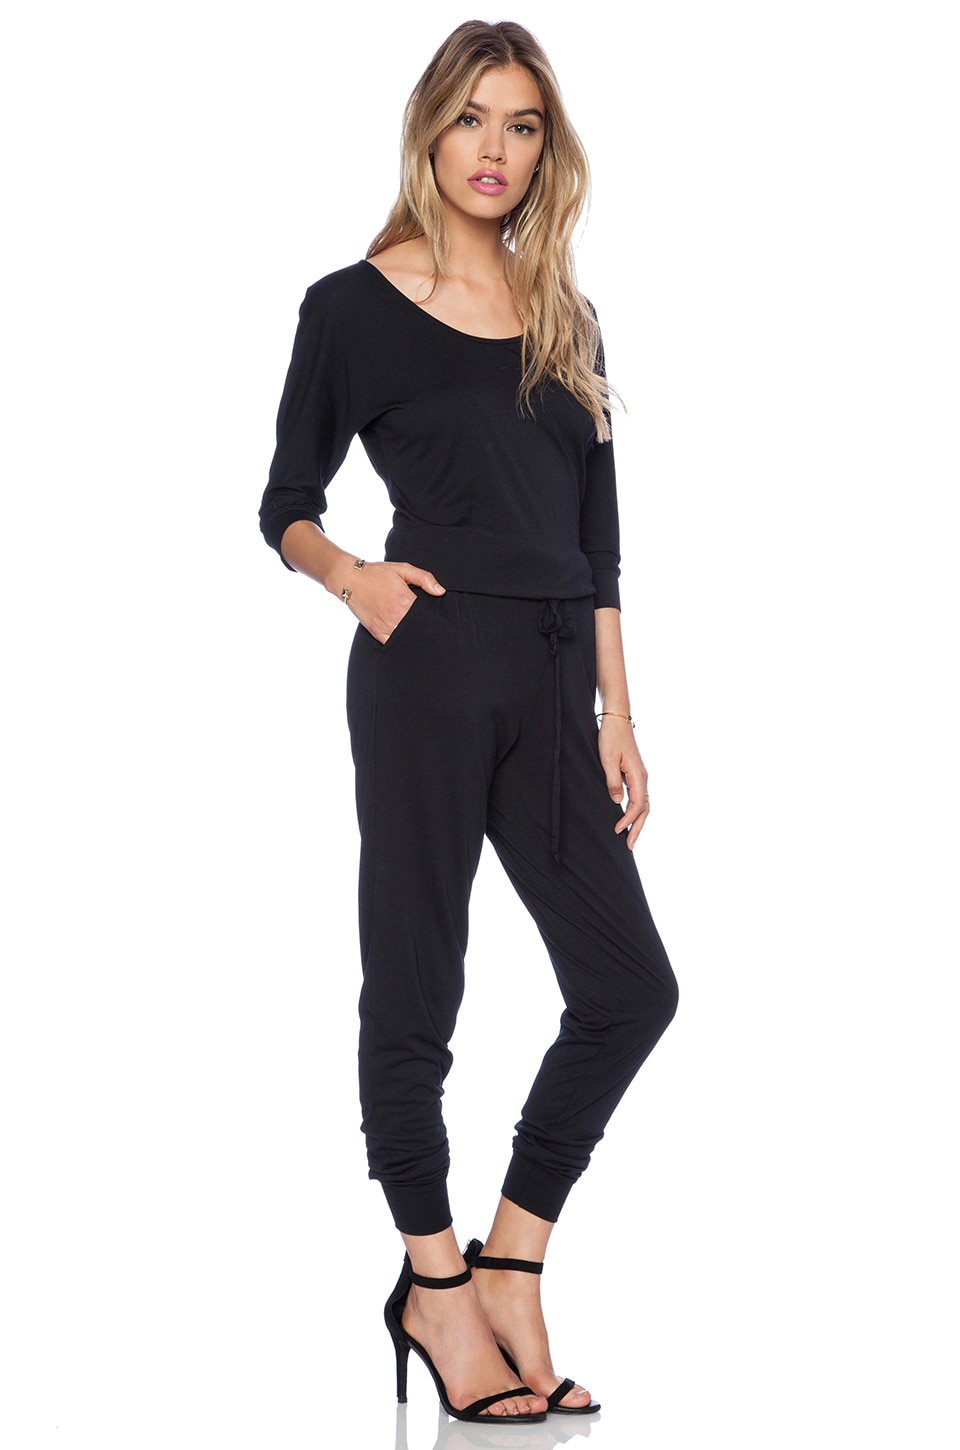 Bobi Modal Jersey Long Sleeve Jumpsuit in Black | REVOLVE